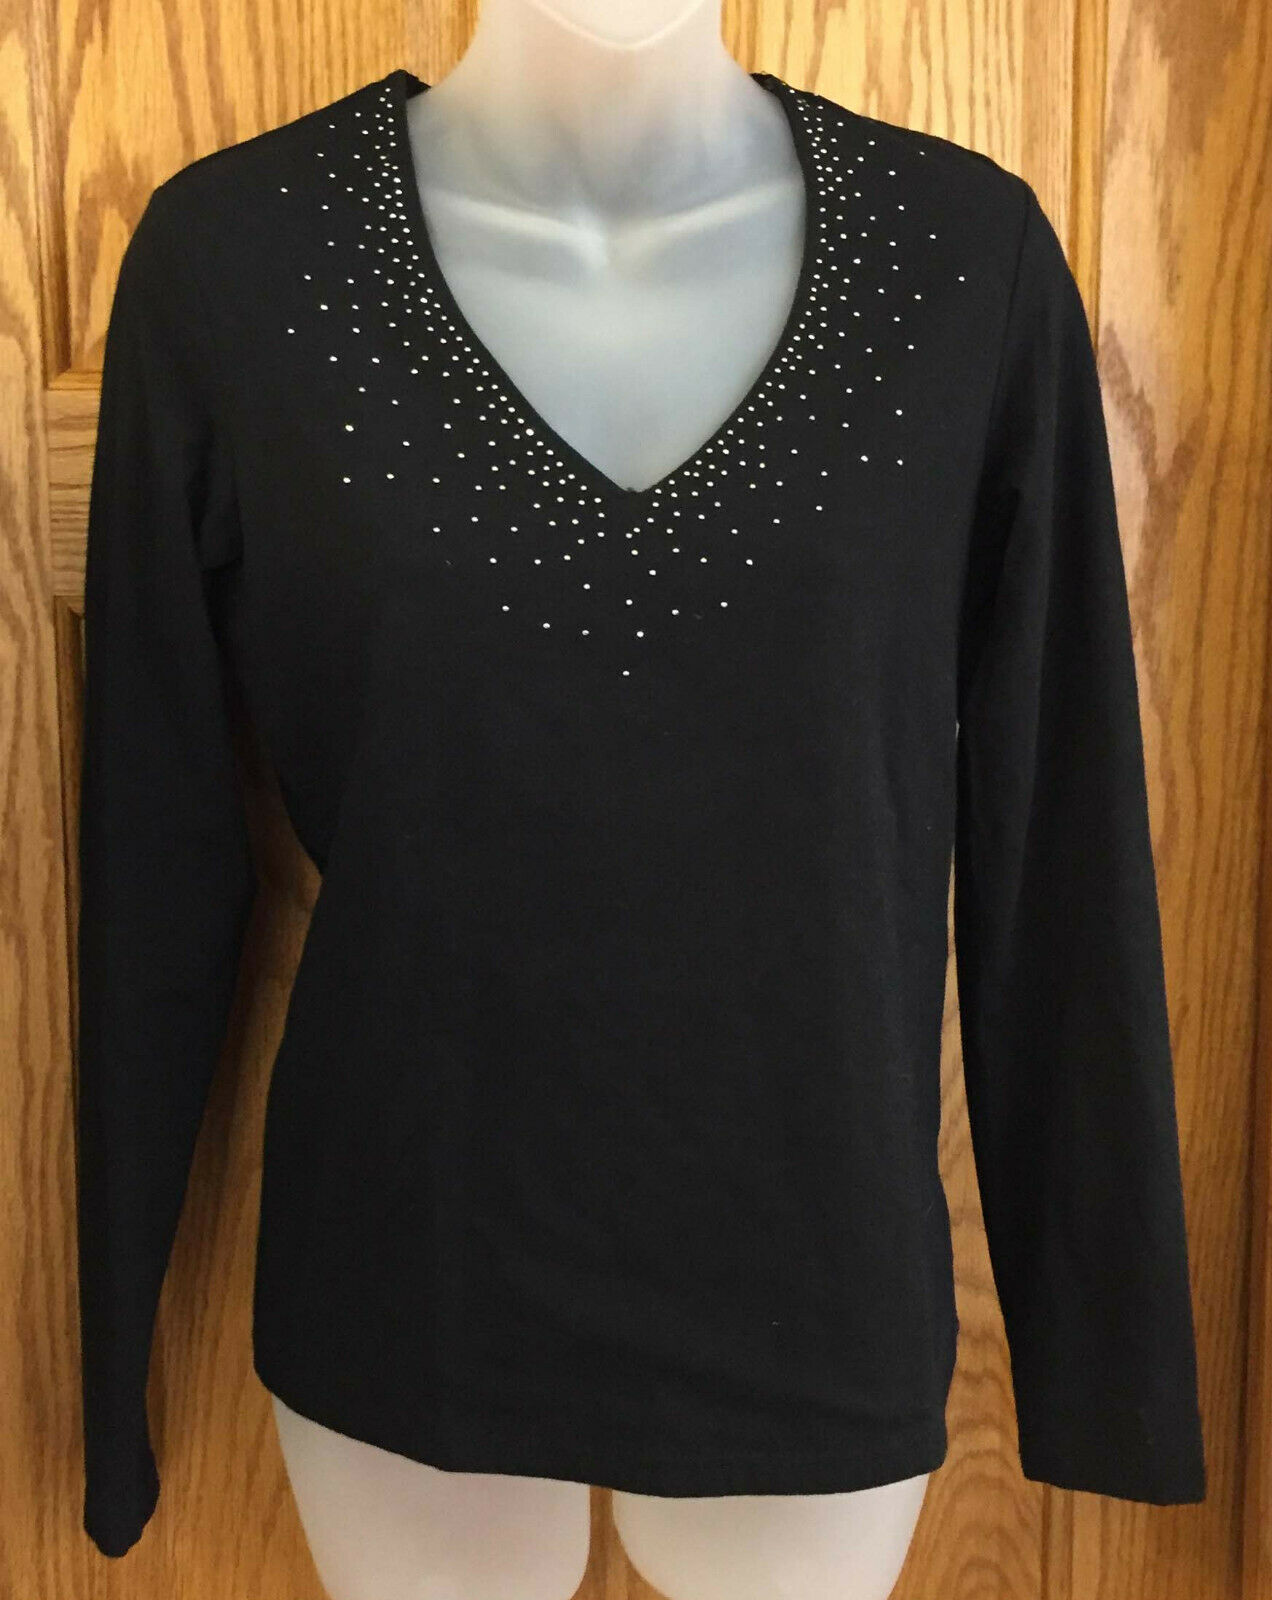 Black Top Shirt Womens Silver Stud Bling Size Small Long Sleeve Faded Glory